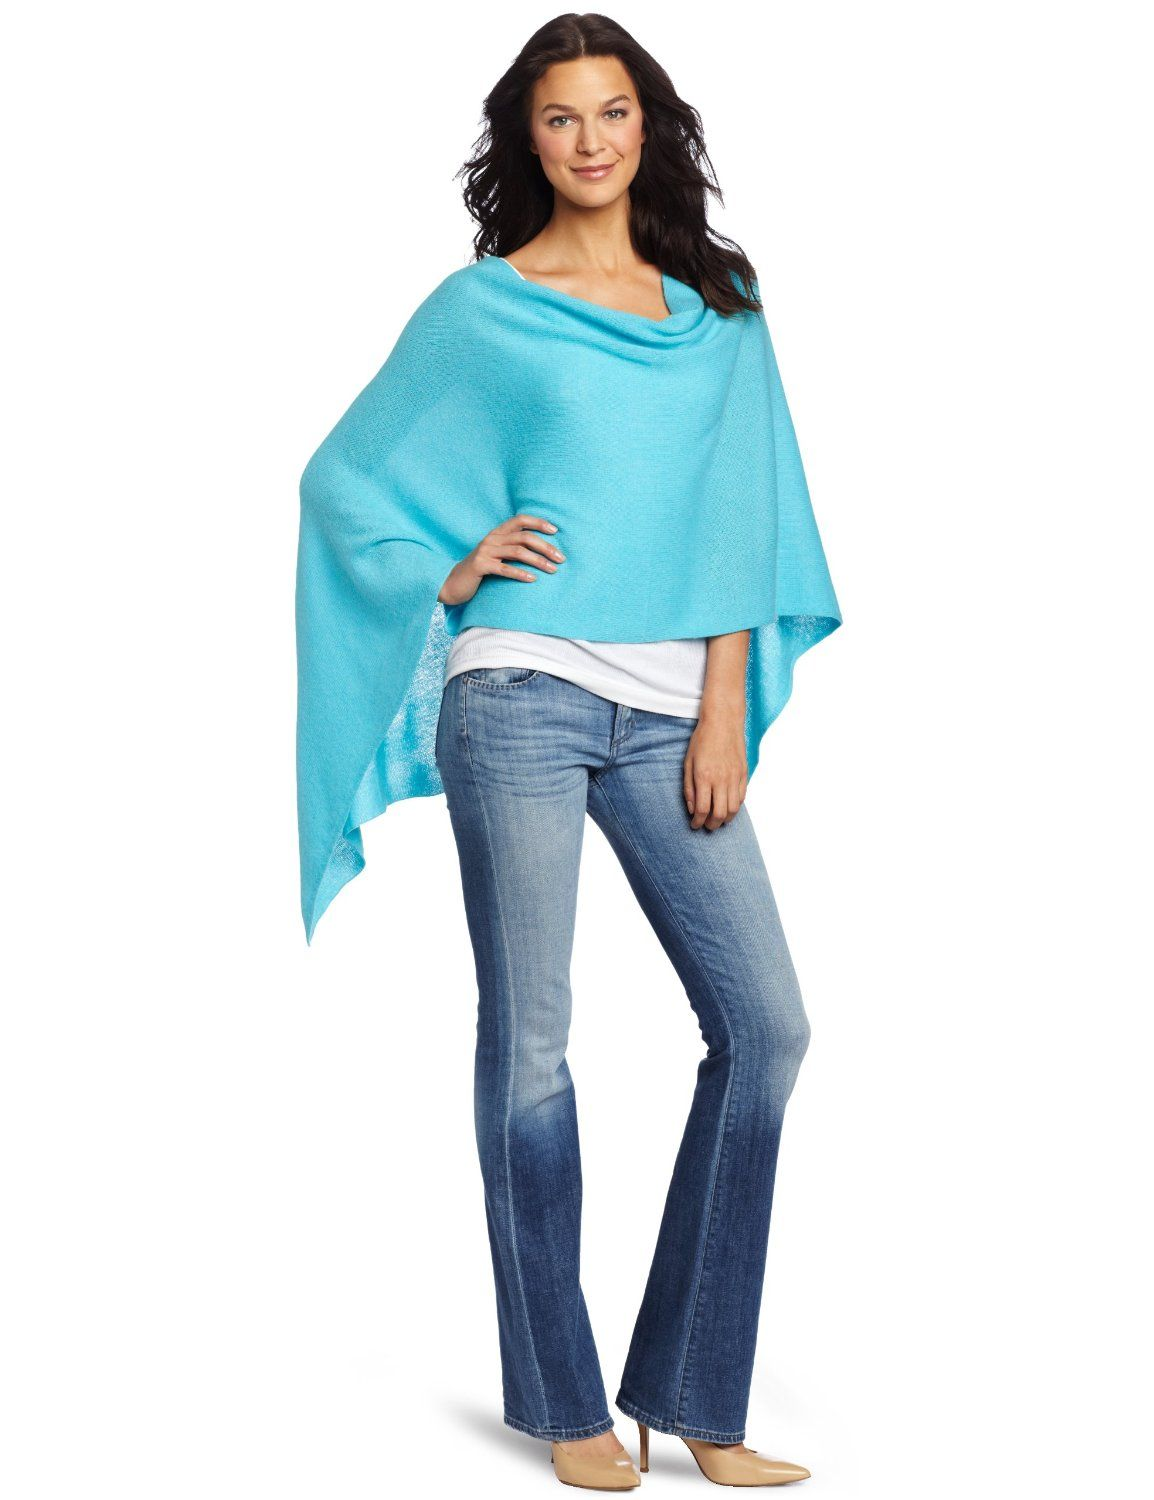 turquoise cashmere sweaters for 50% off by Minnie Rose - favored ...